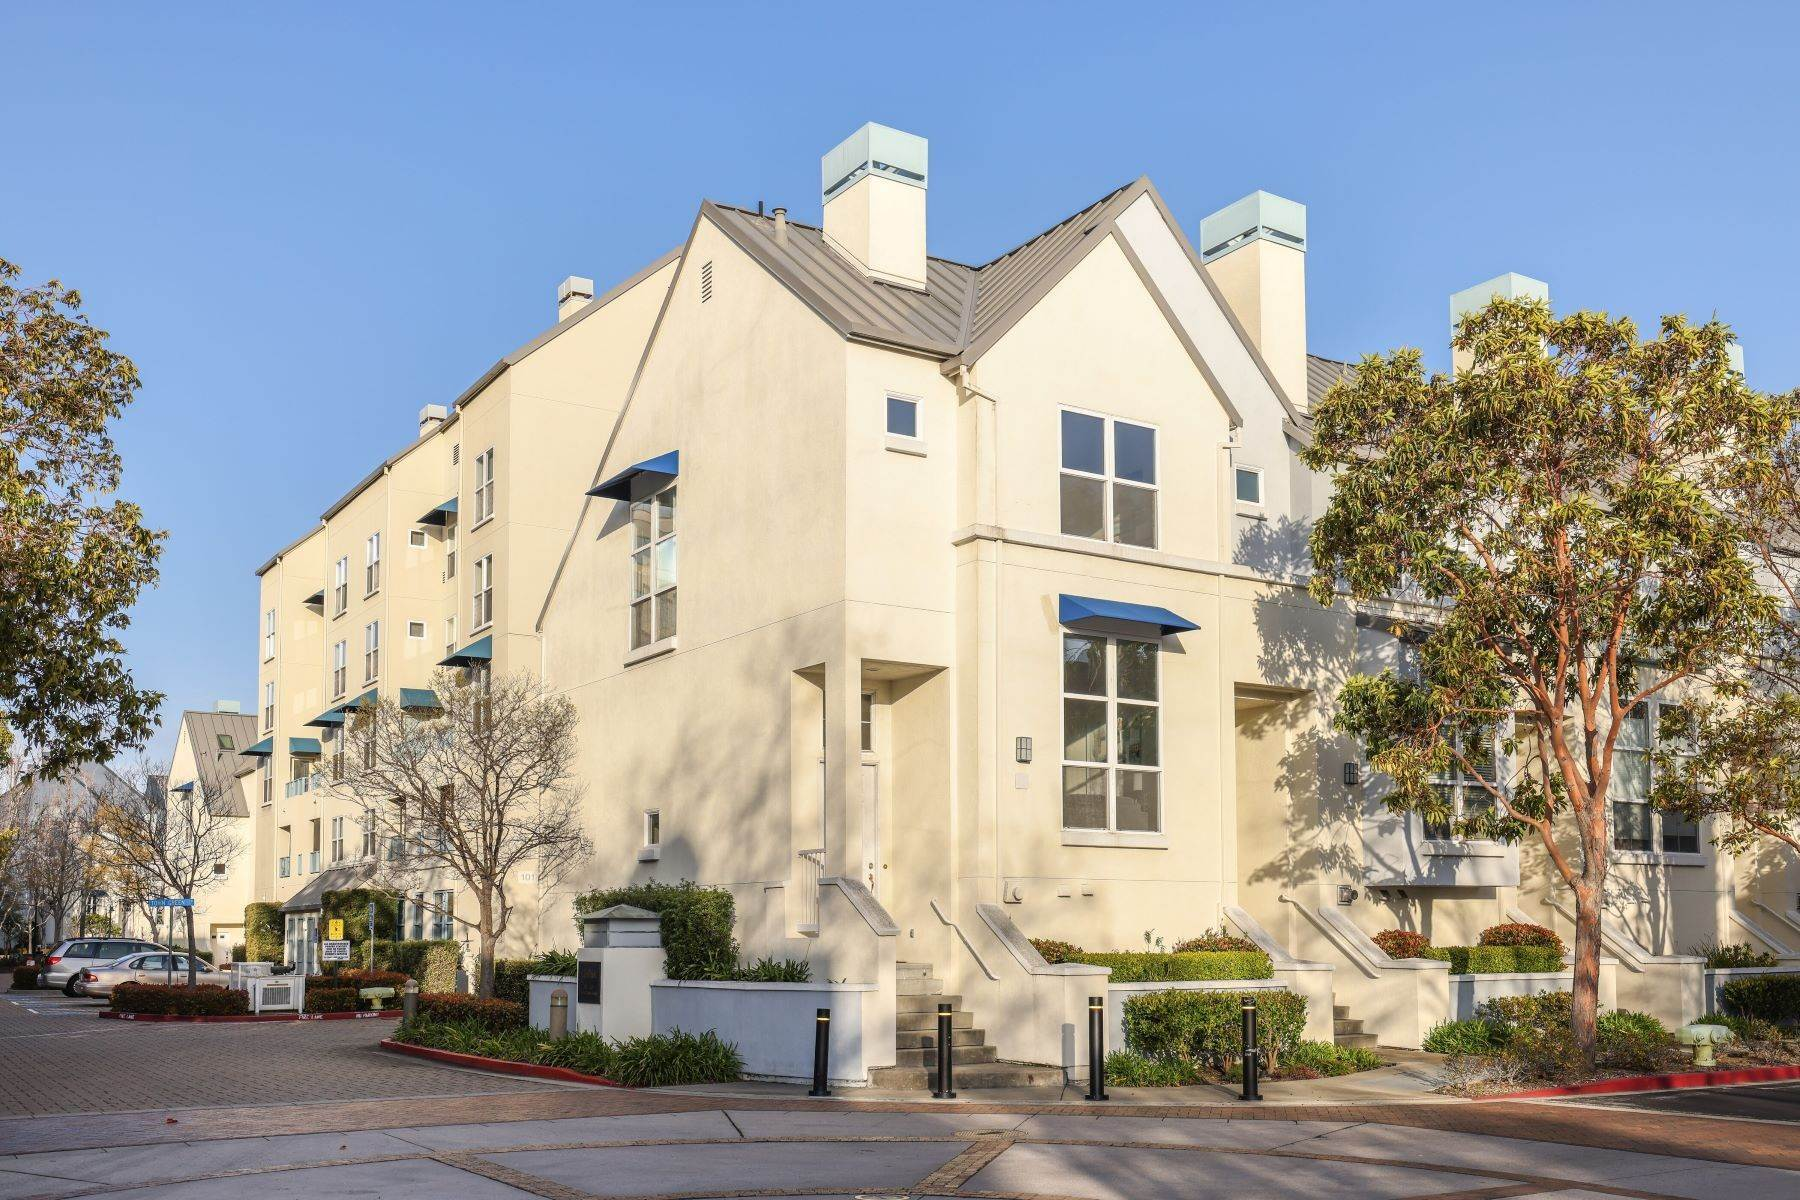 townhouses for Sale at Elegant Multi-Level Townhome 201 Town Green Lane Foster City, California 94404 United States